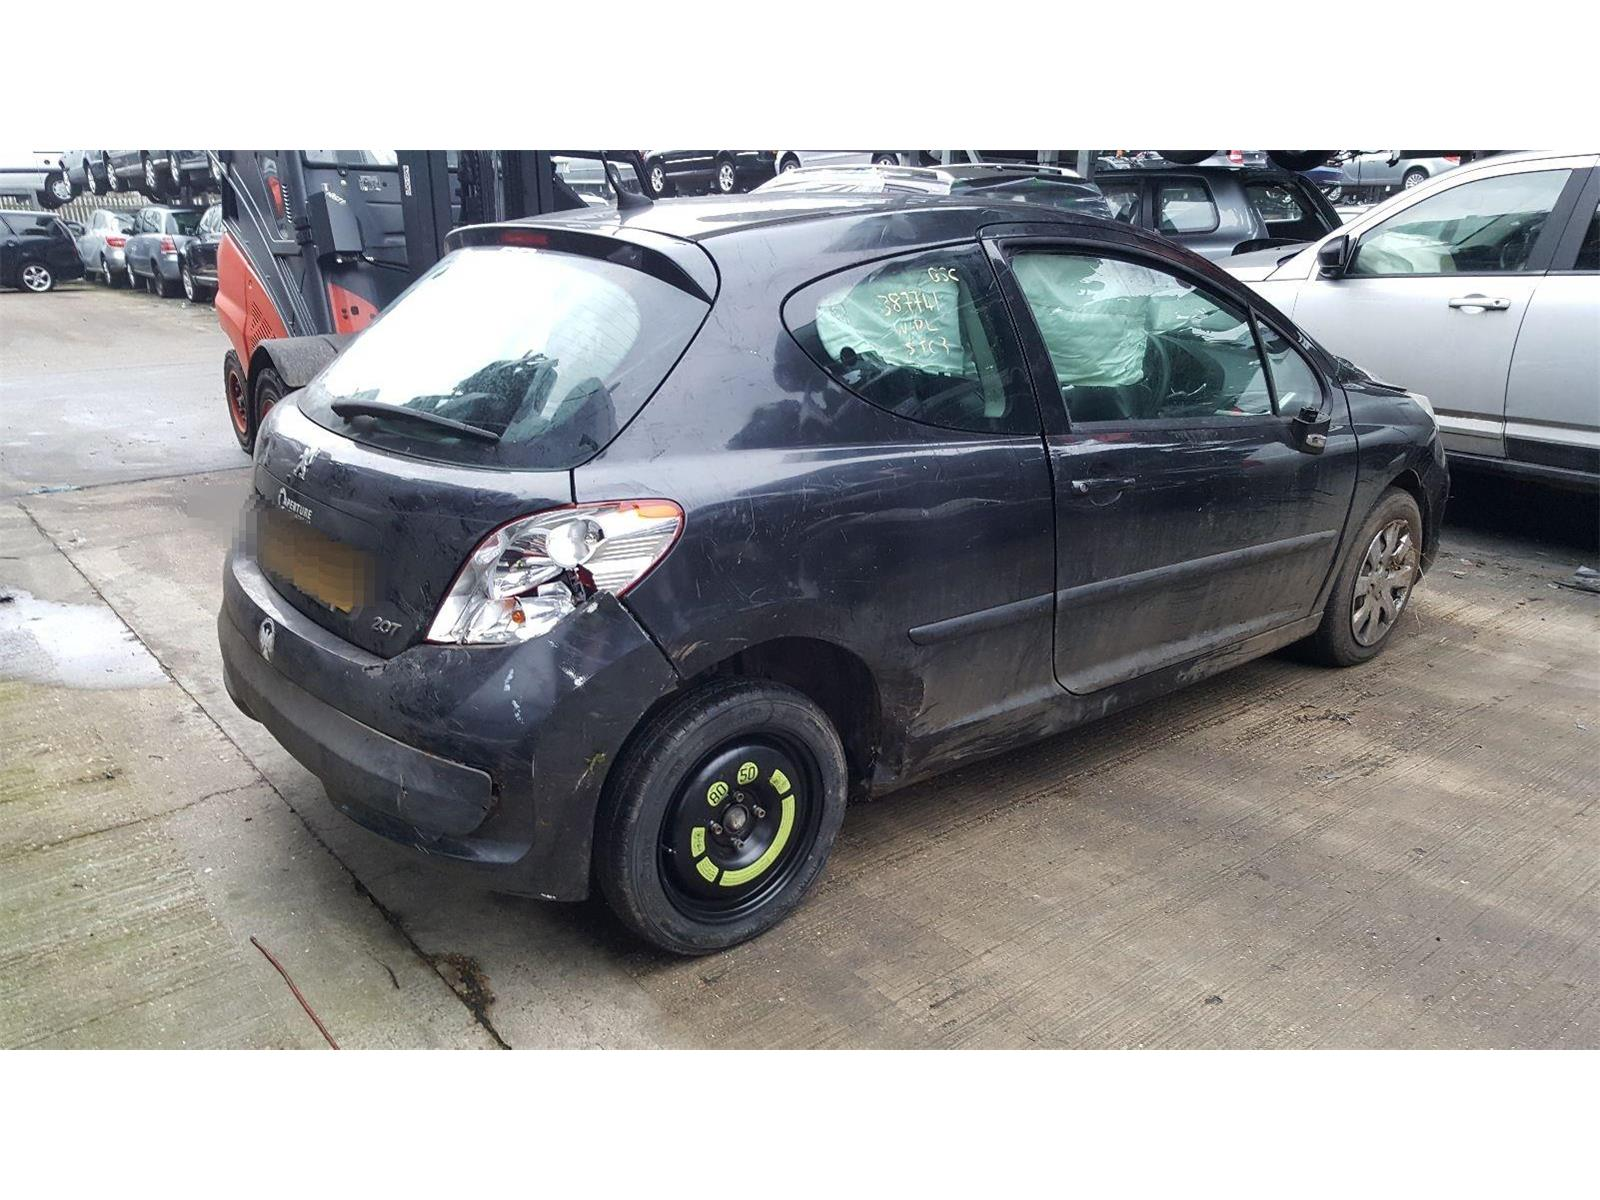 Peugeot 207 2006 To 2009 S A C Hdi 3 Door Hatchback Scrap Fuse Box For Sale